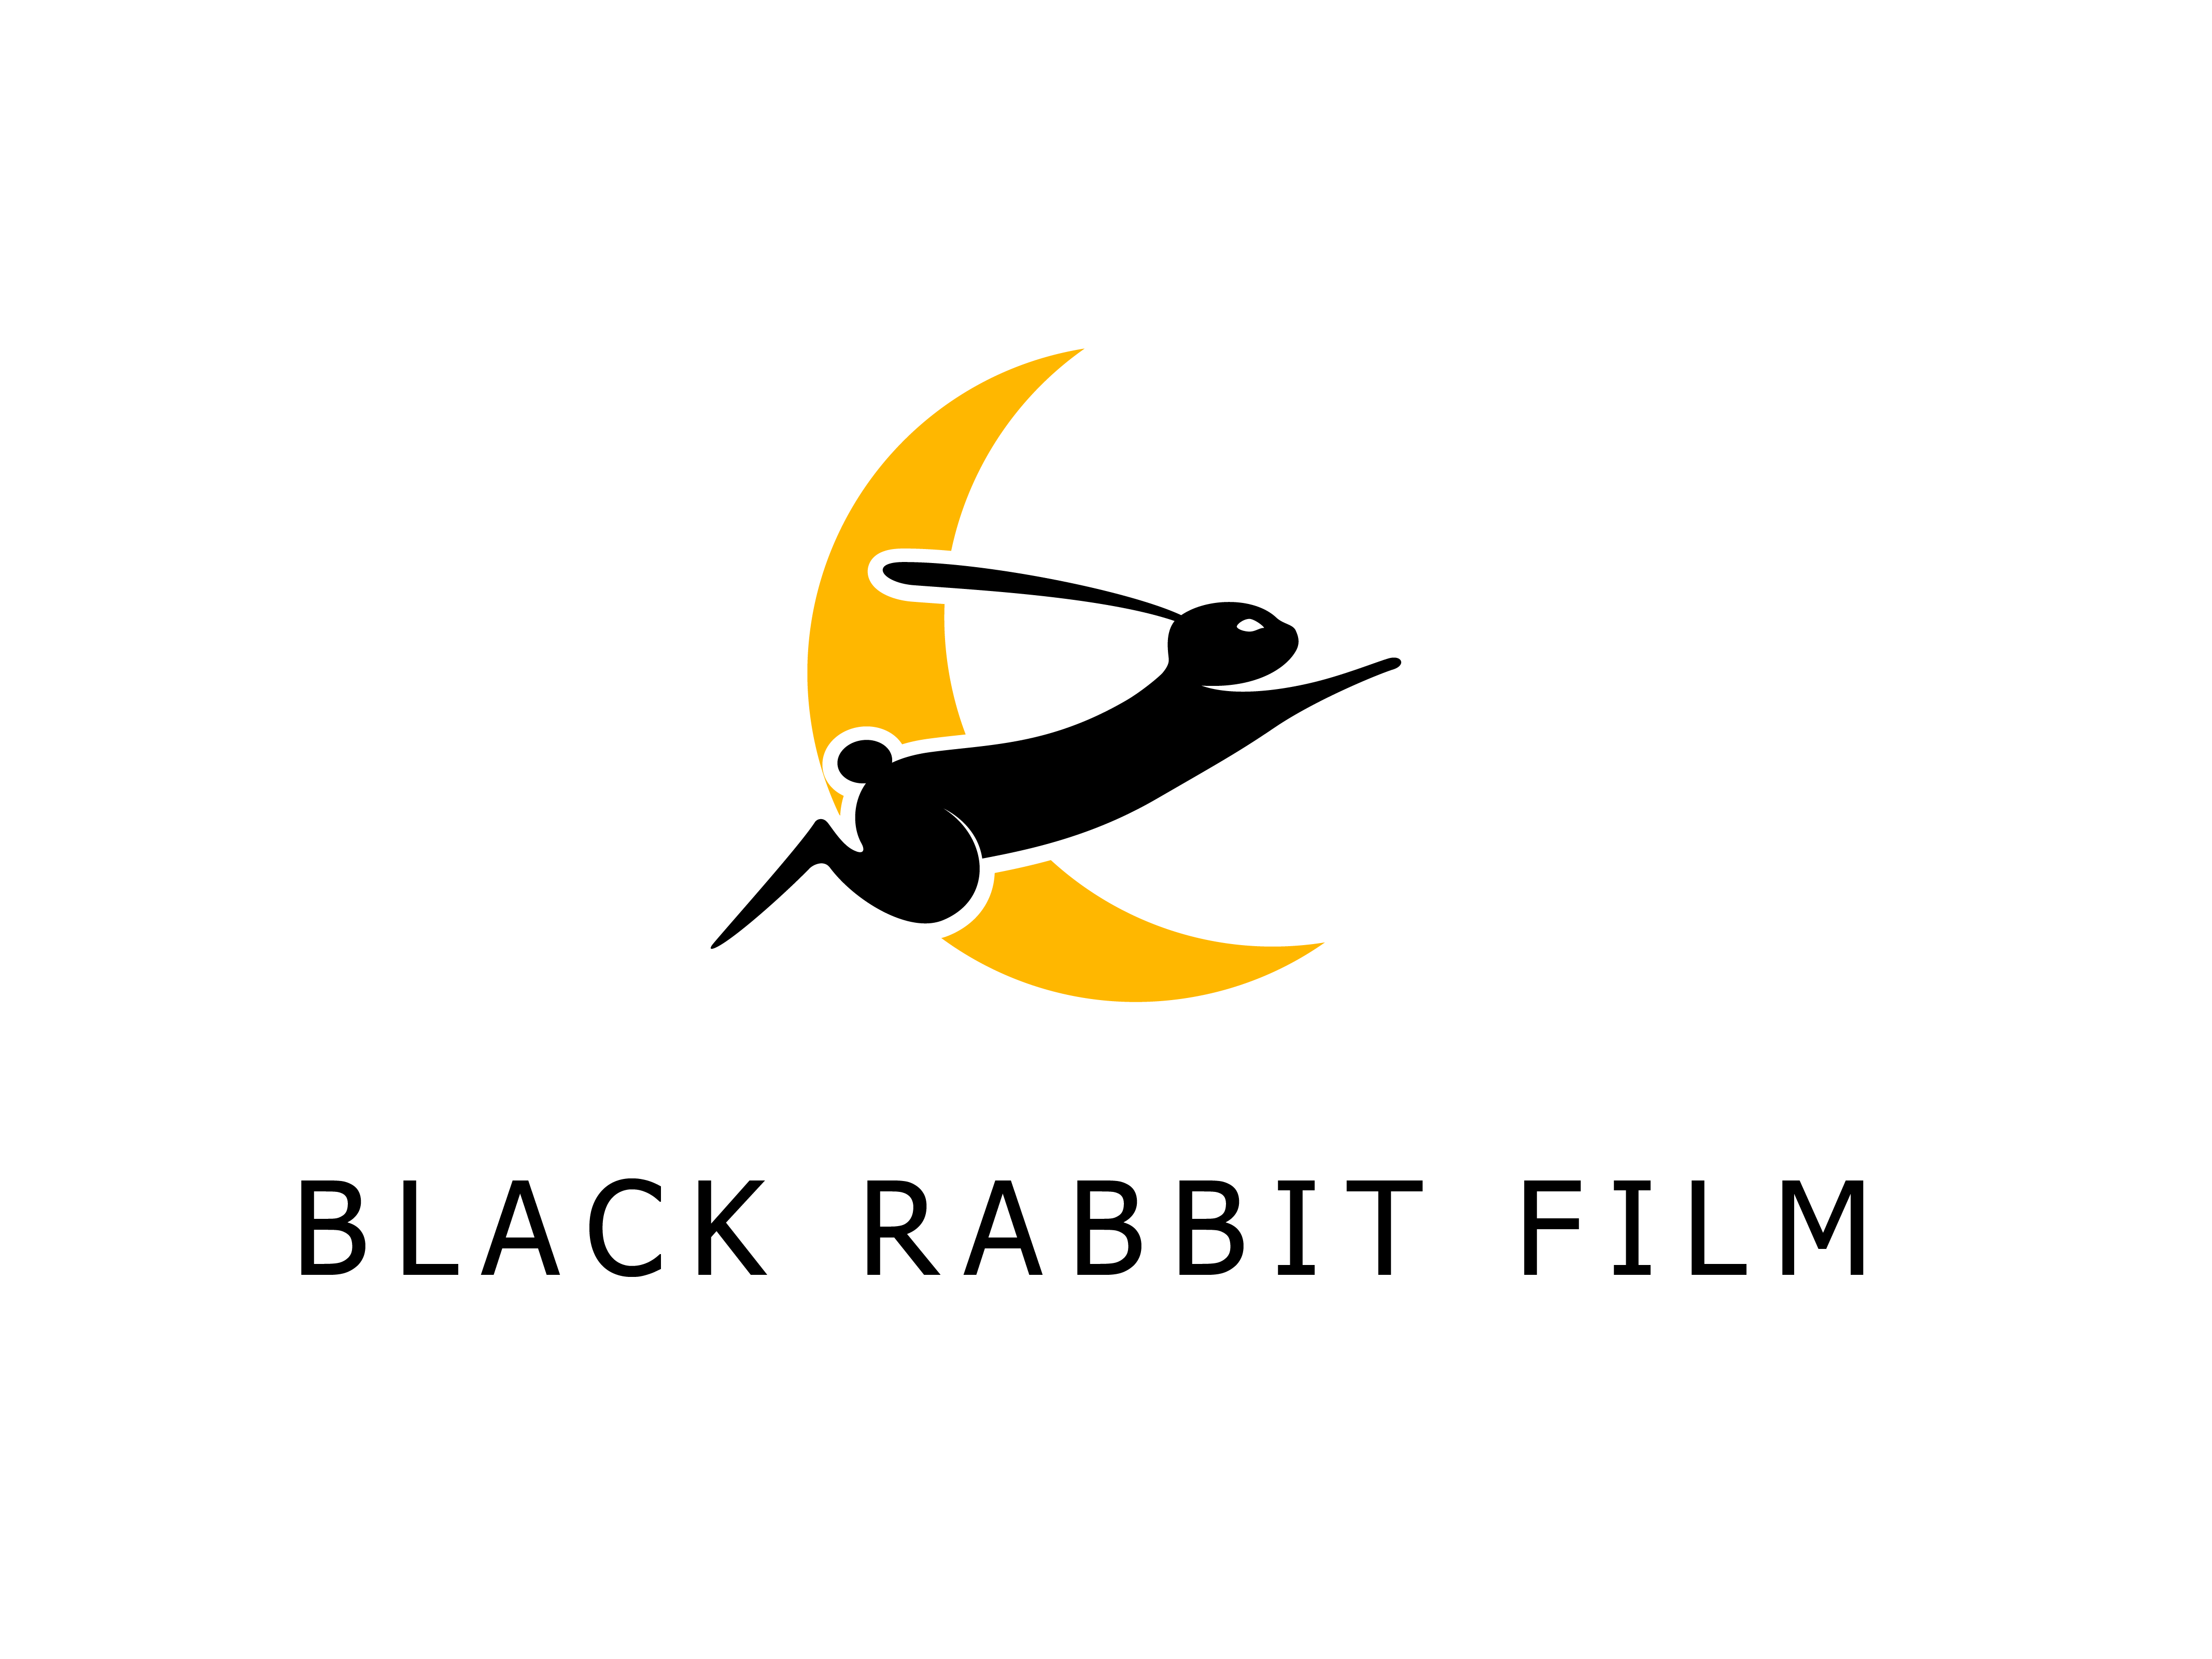 Black Rabbit Film